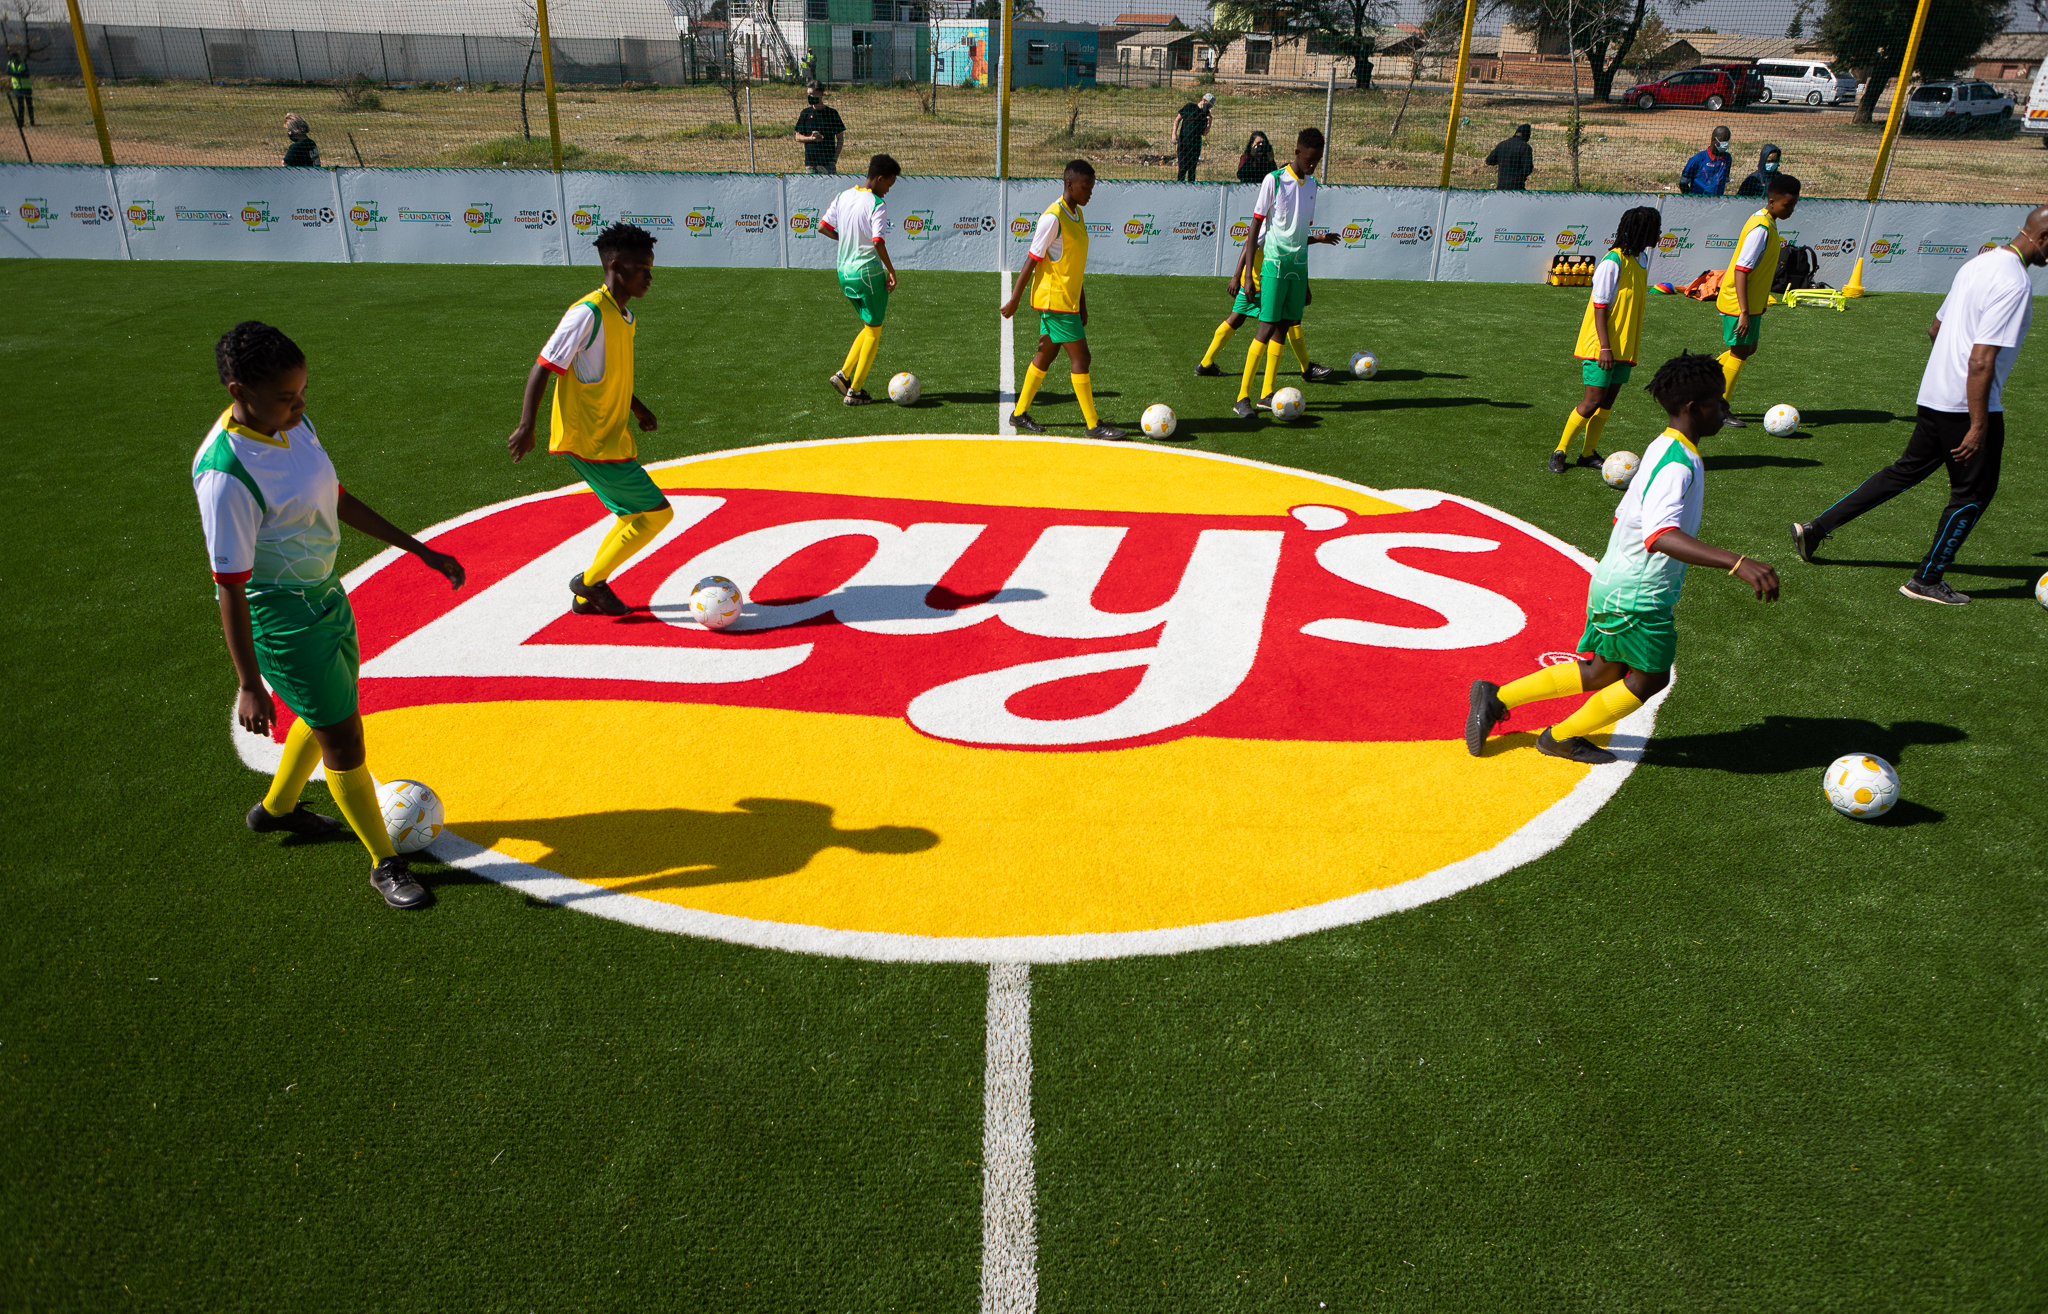 01_Lays RePlay Pitch_Training Session